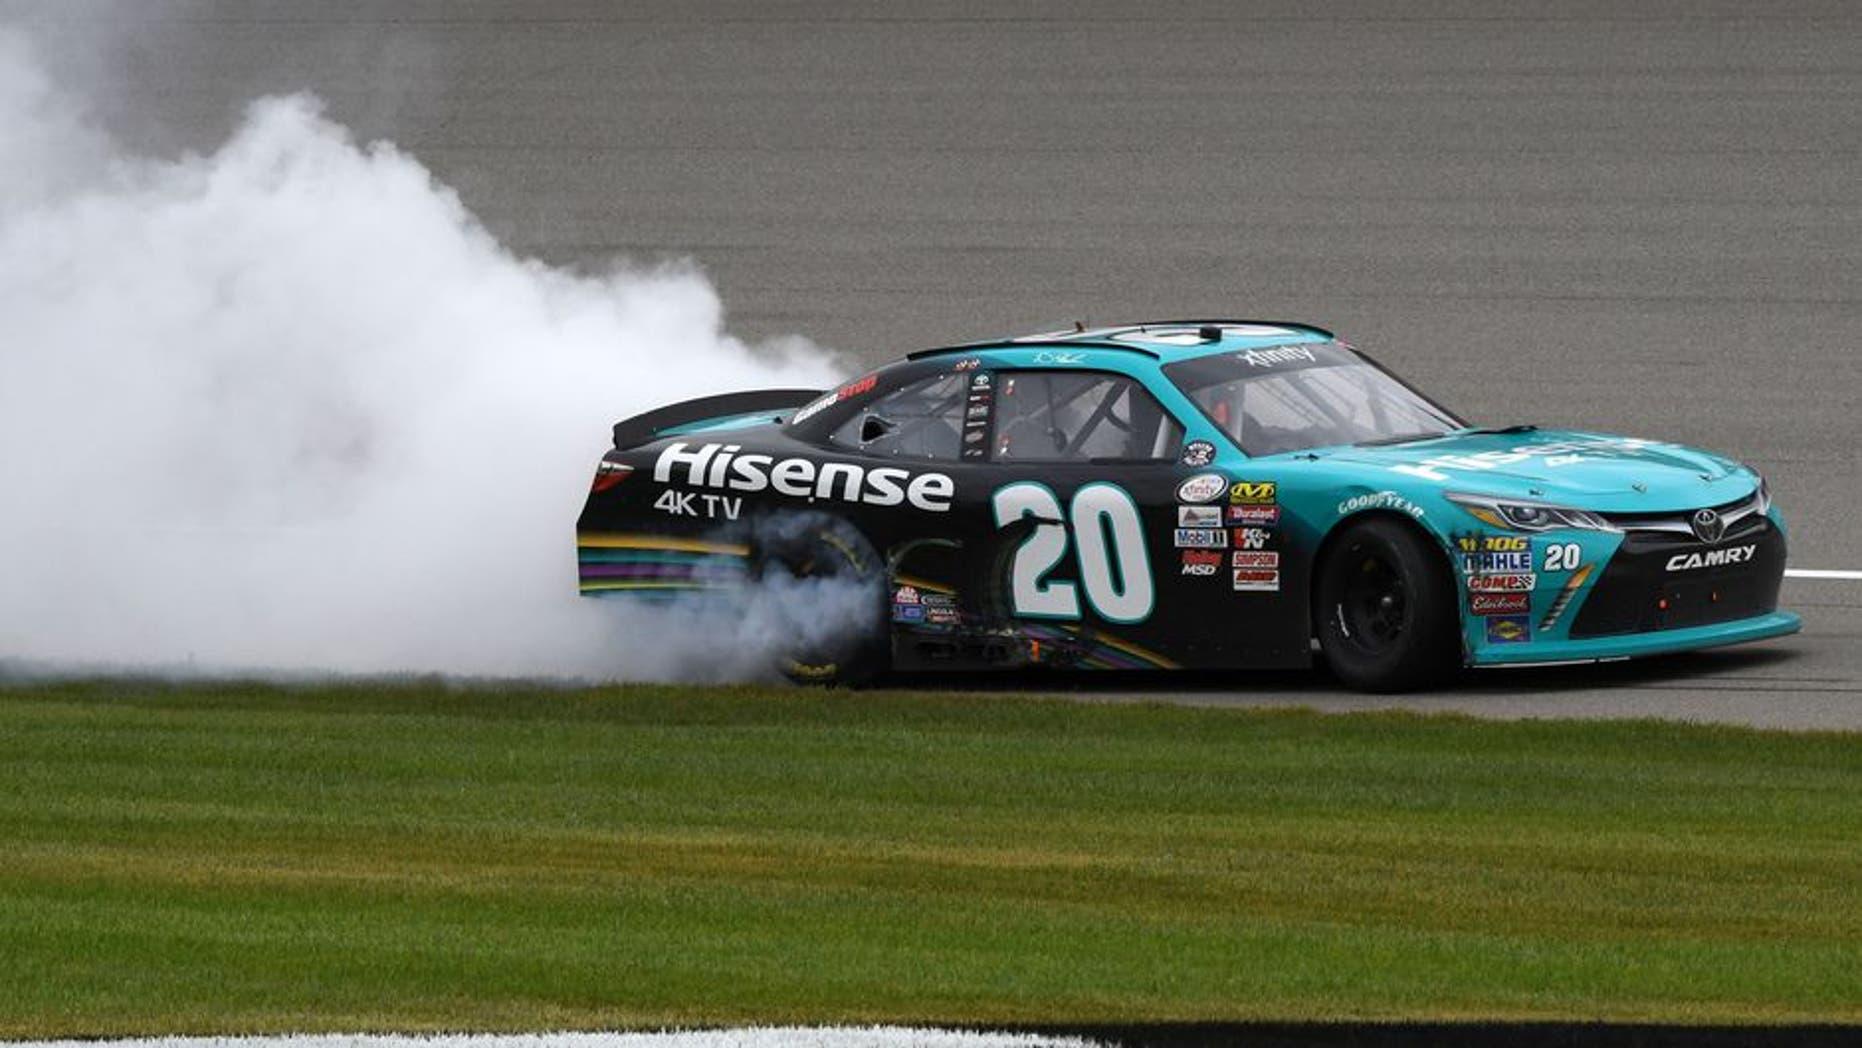 No  20 XFINITY Series win at Michigan encumbered by illegal splitter